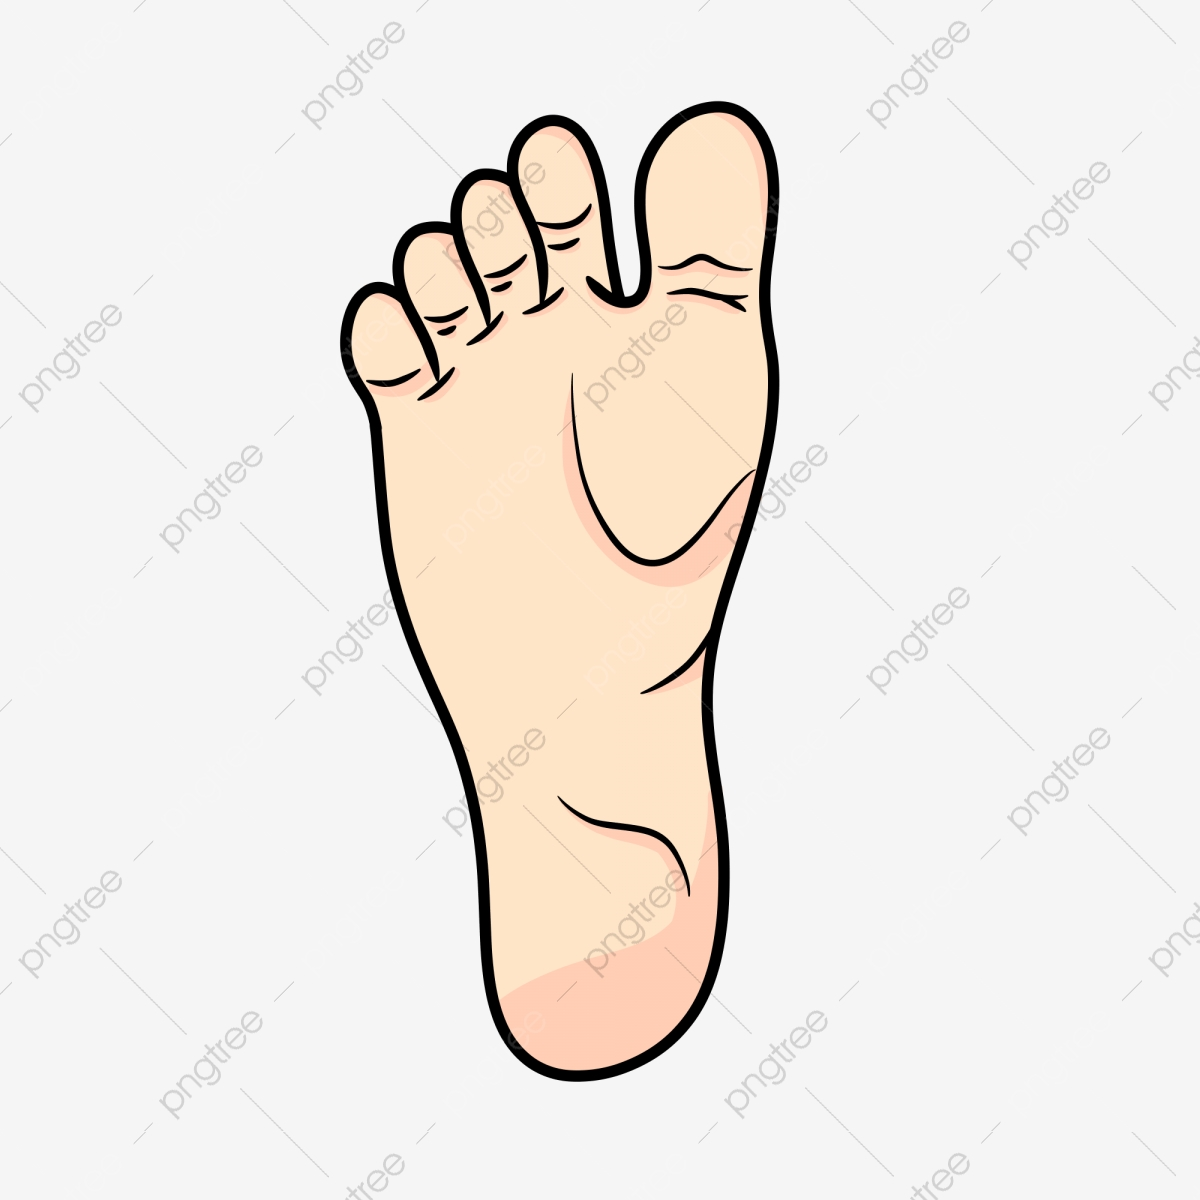 human organs feet human organ foot pretty png transparent clipart image and psd file for free download https pngtree com freepng human organs feet 5459390 html